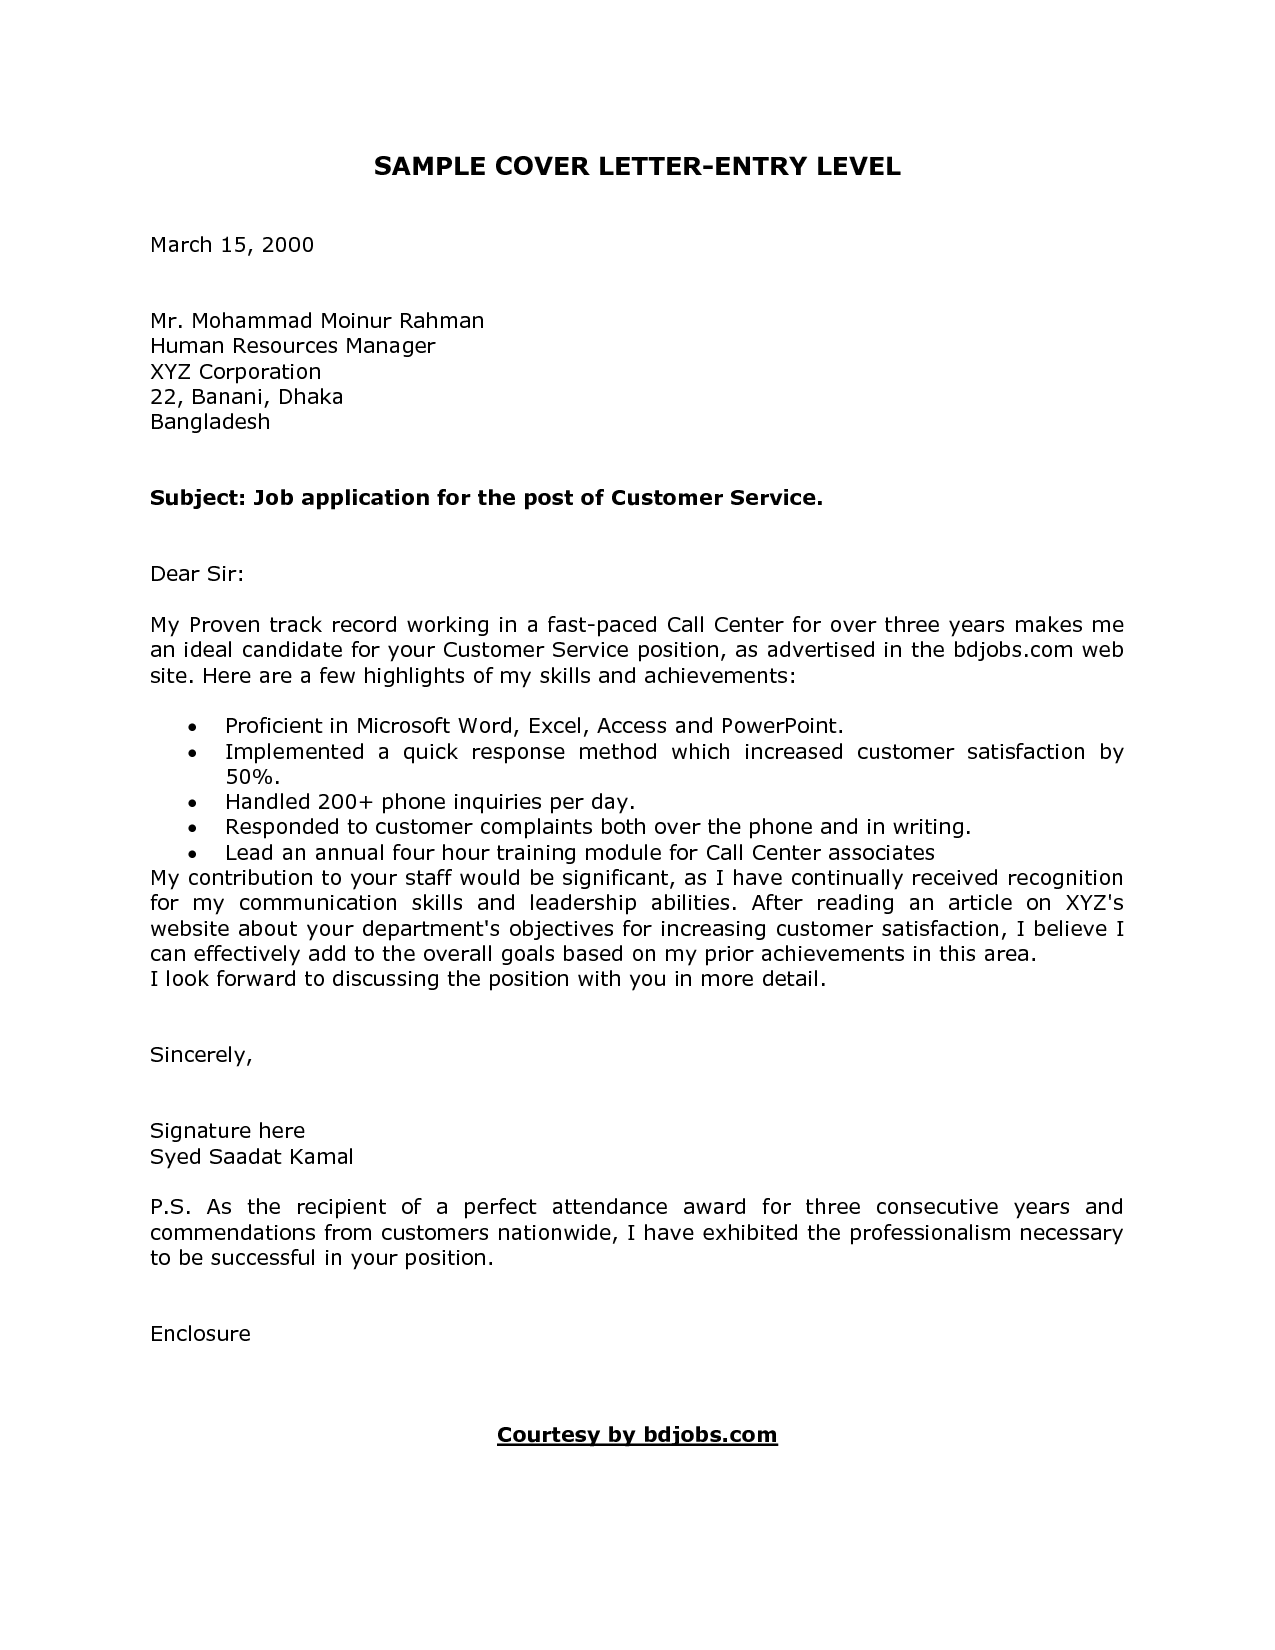 How To Write A Resume Cover Letter Cover Letter Pinterest Apps